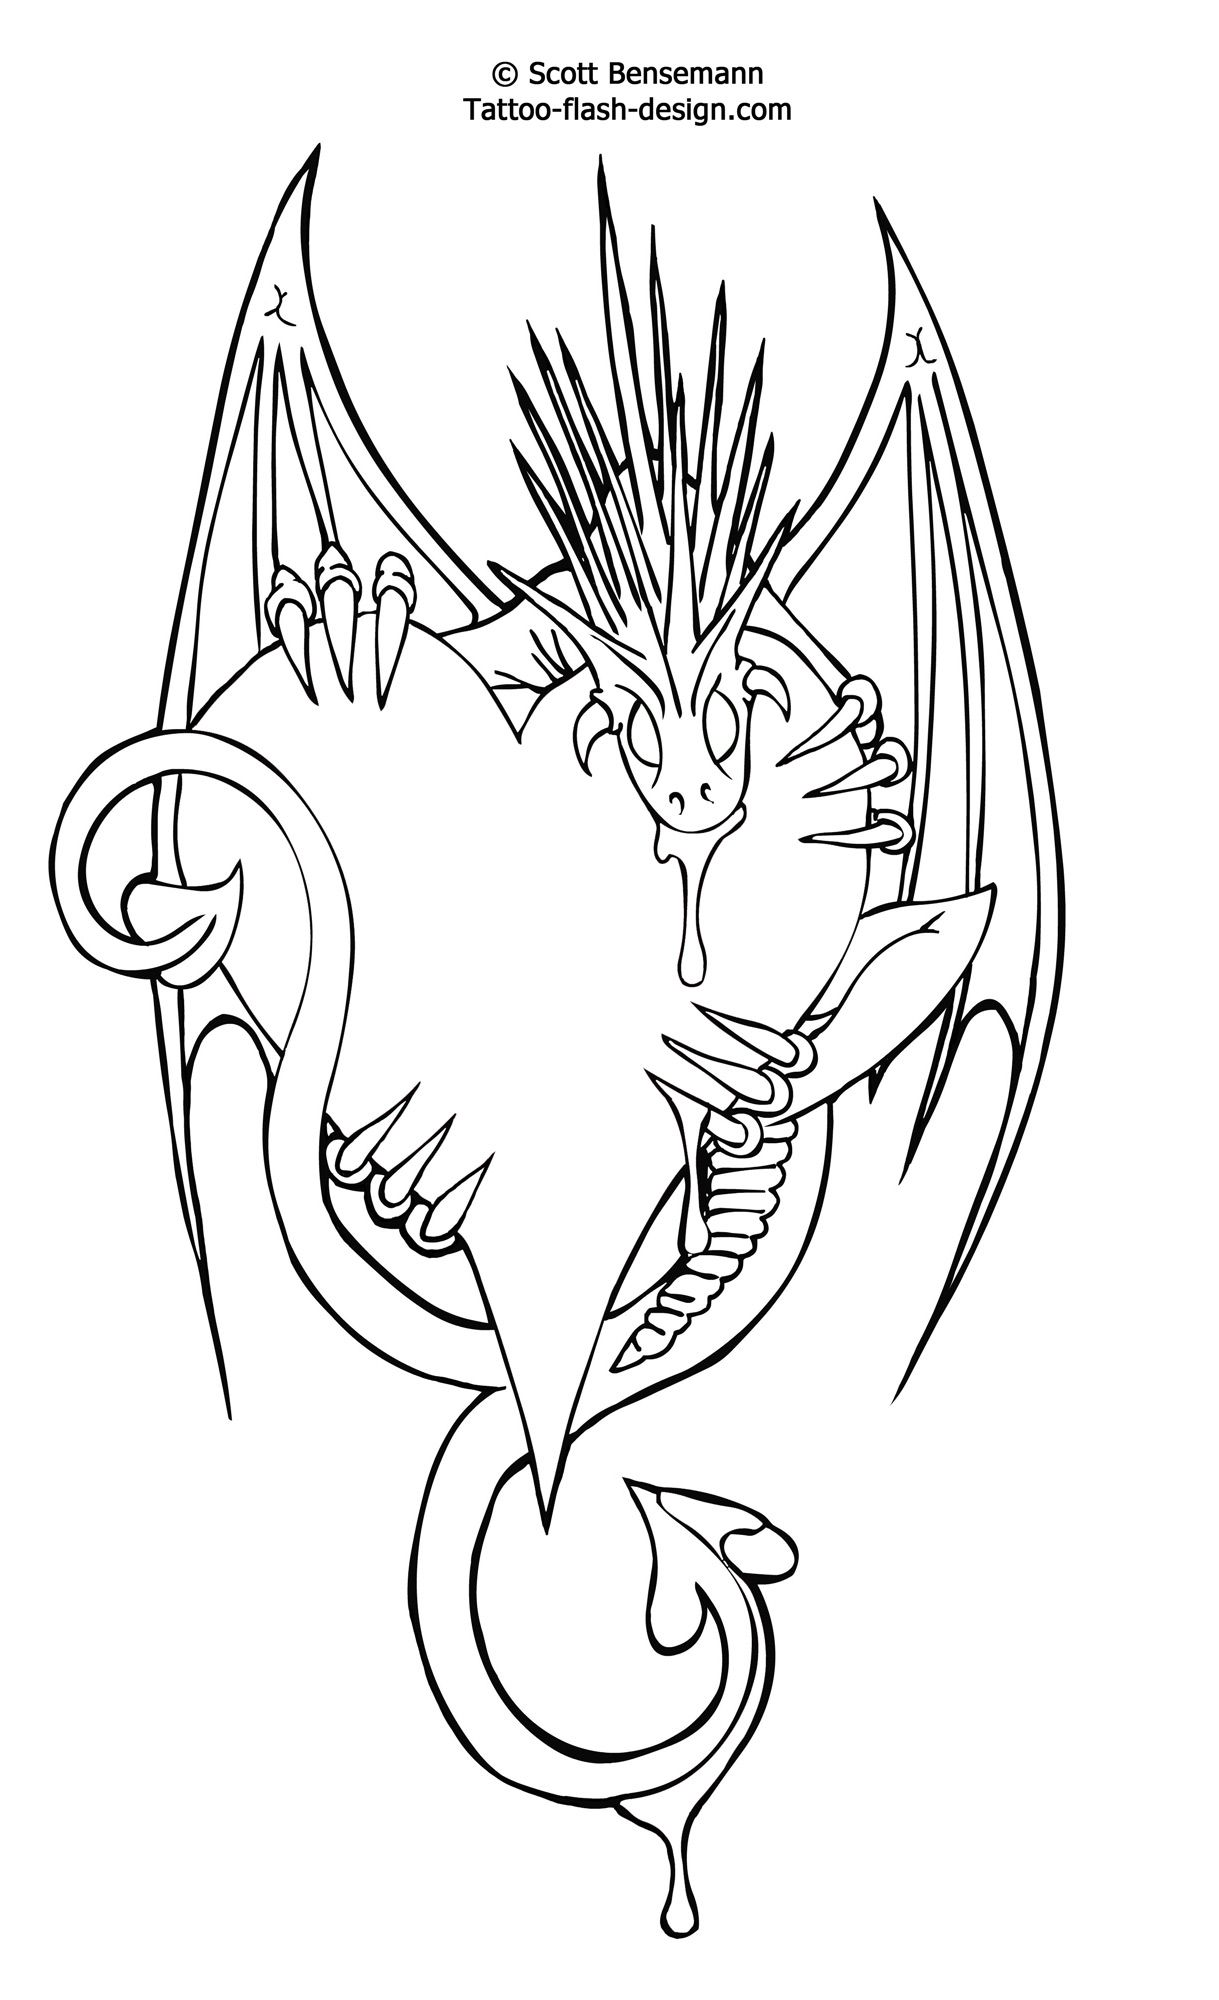 Free Tattoo Flash Love Heart Dragon Design Printable